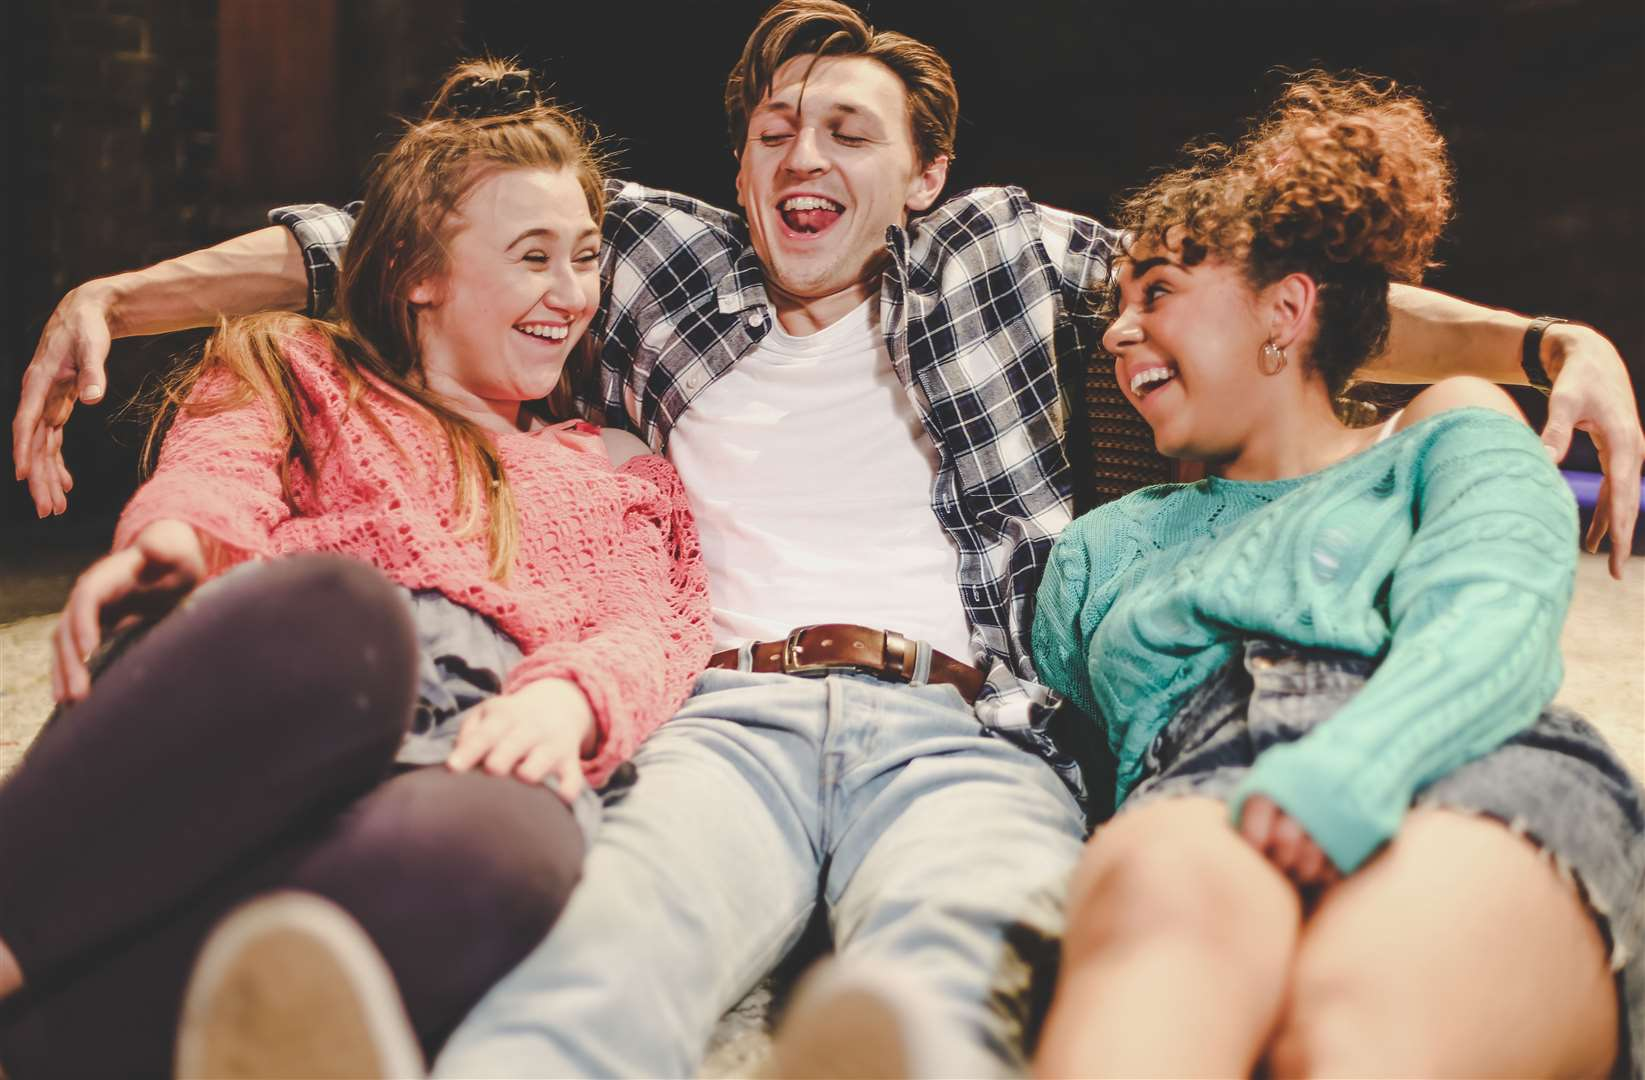 Rita, Sue and Bob Too is at the Marlowe Theatre